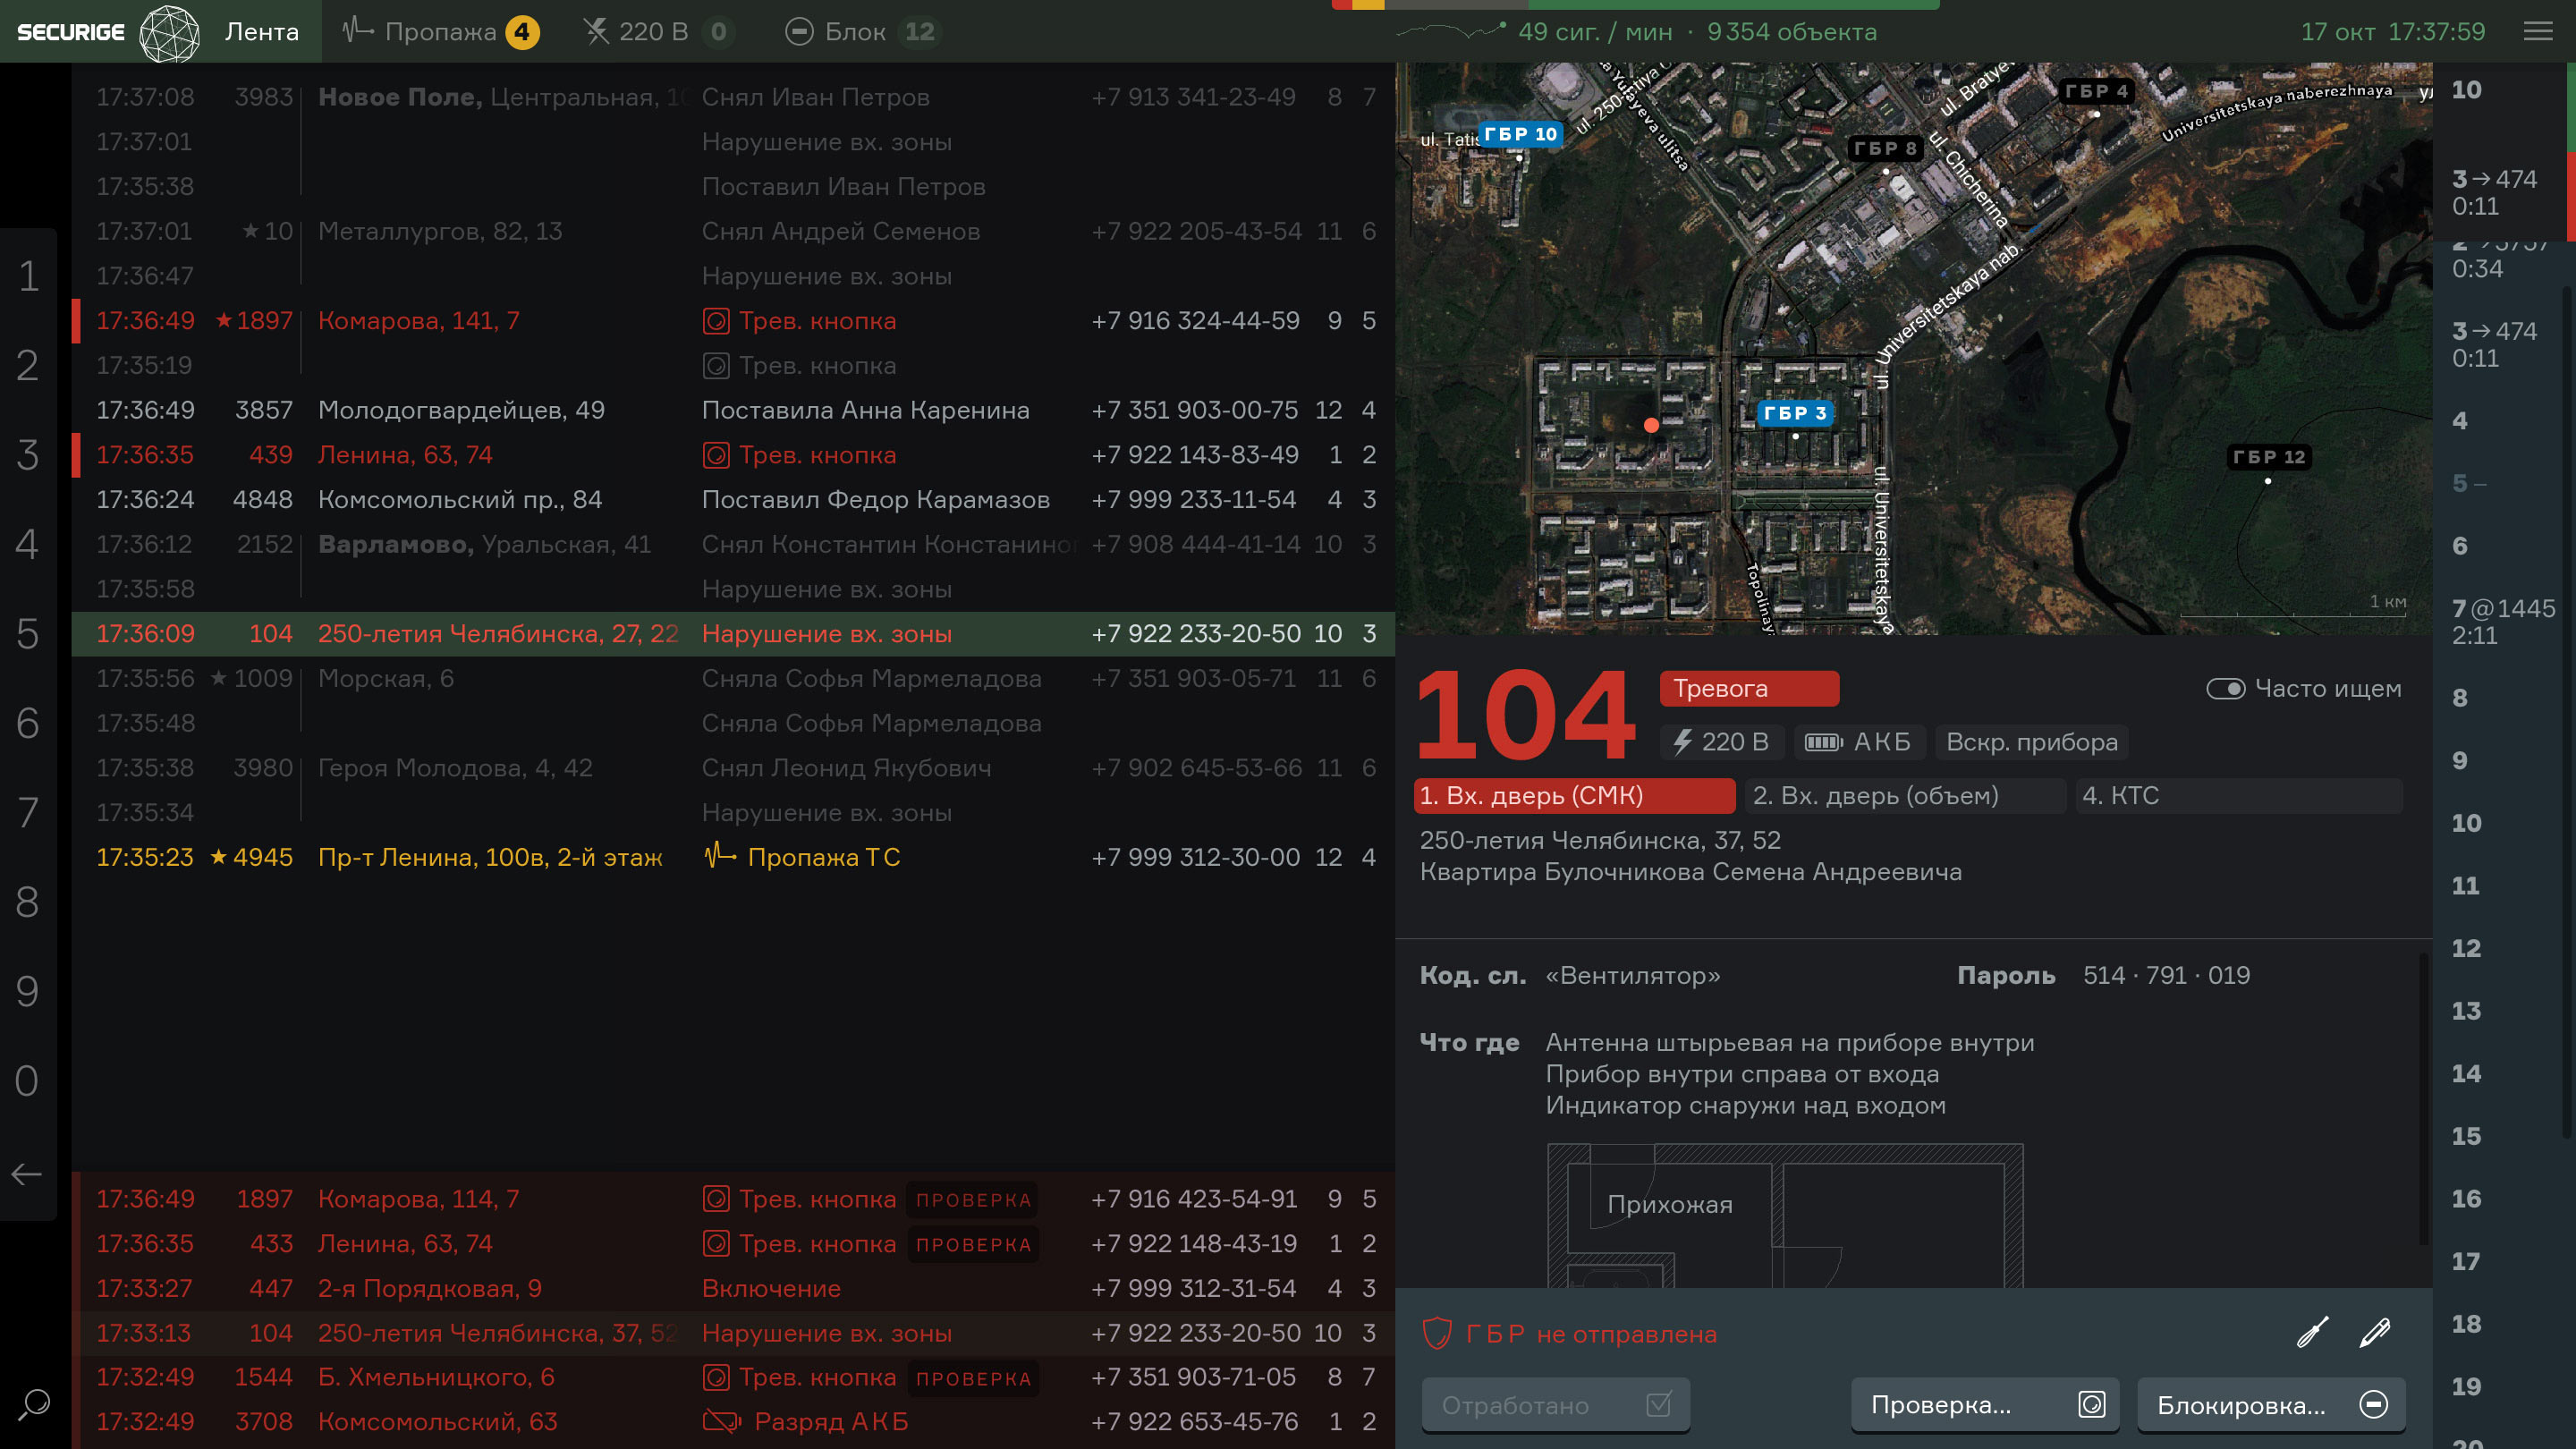 Securige operator user interface